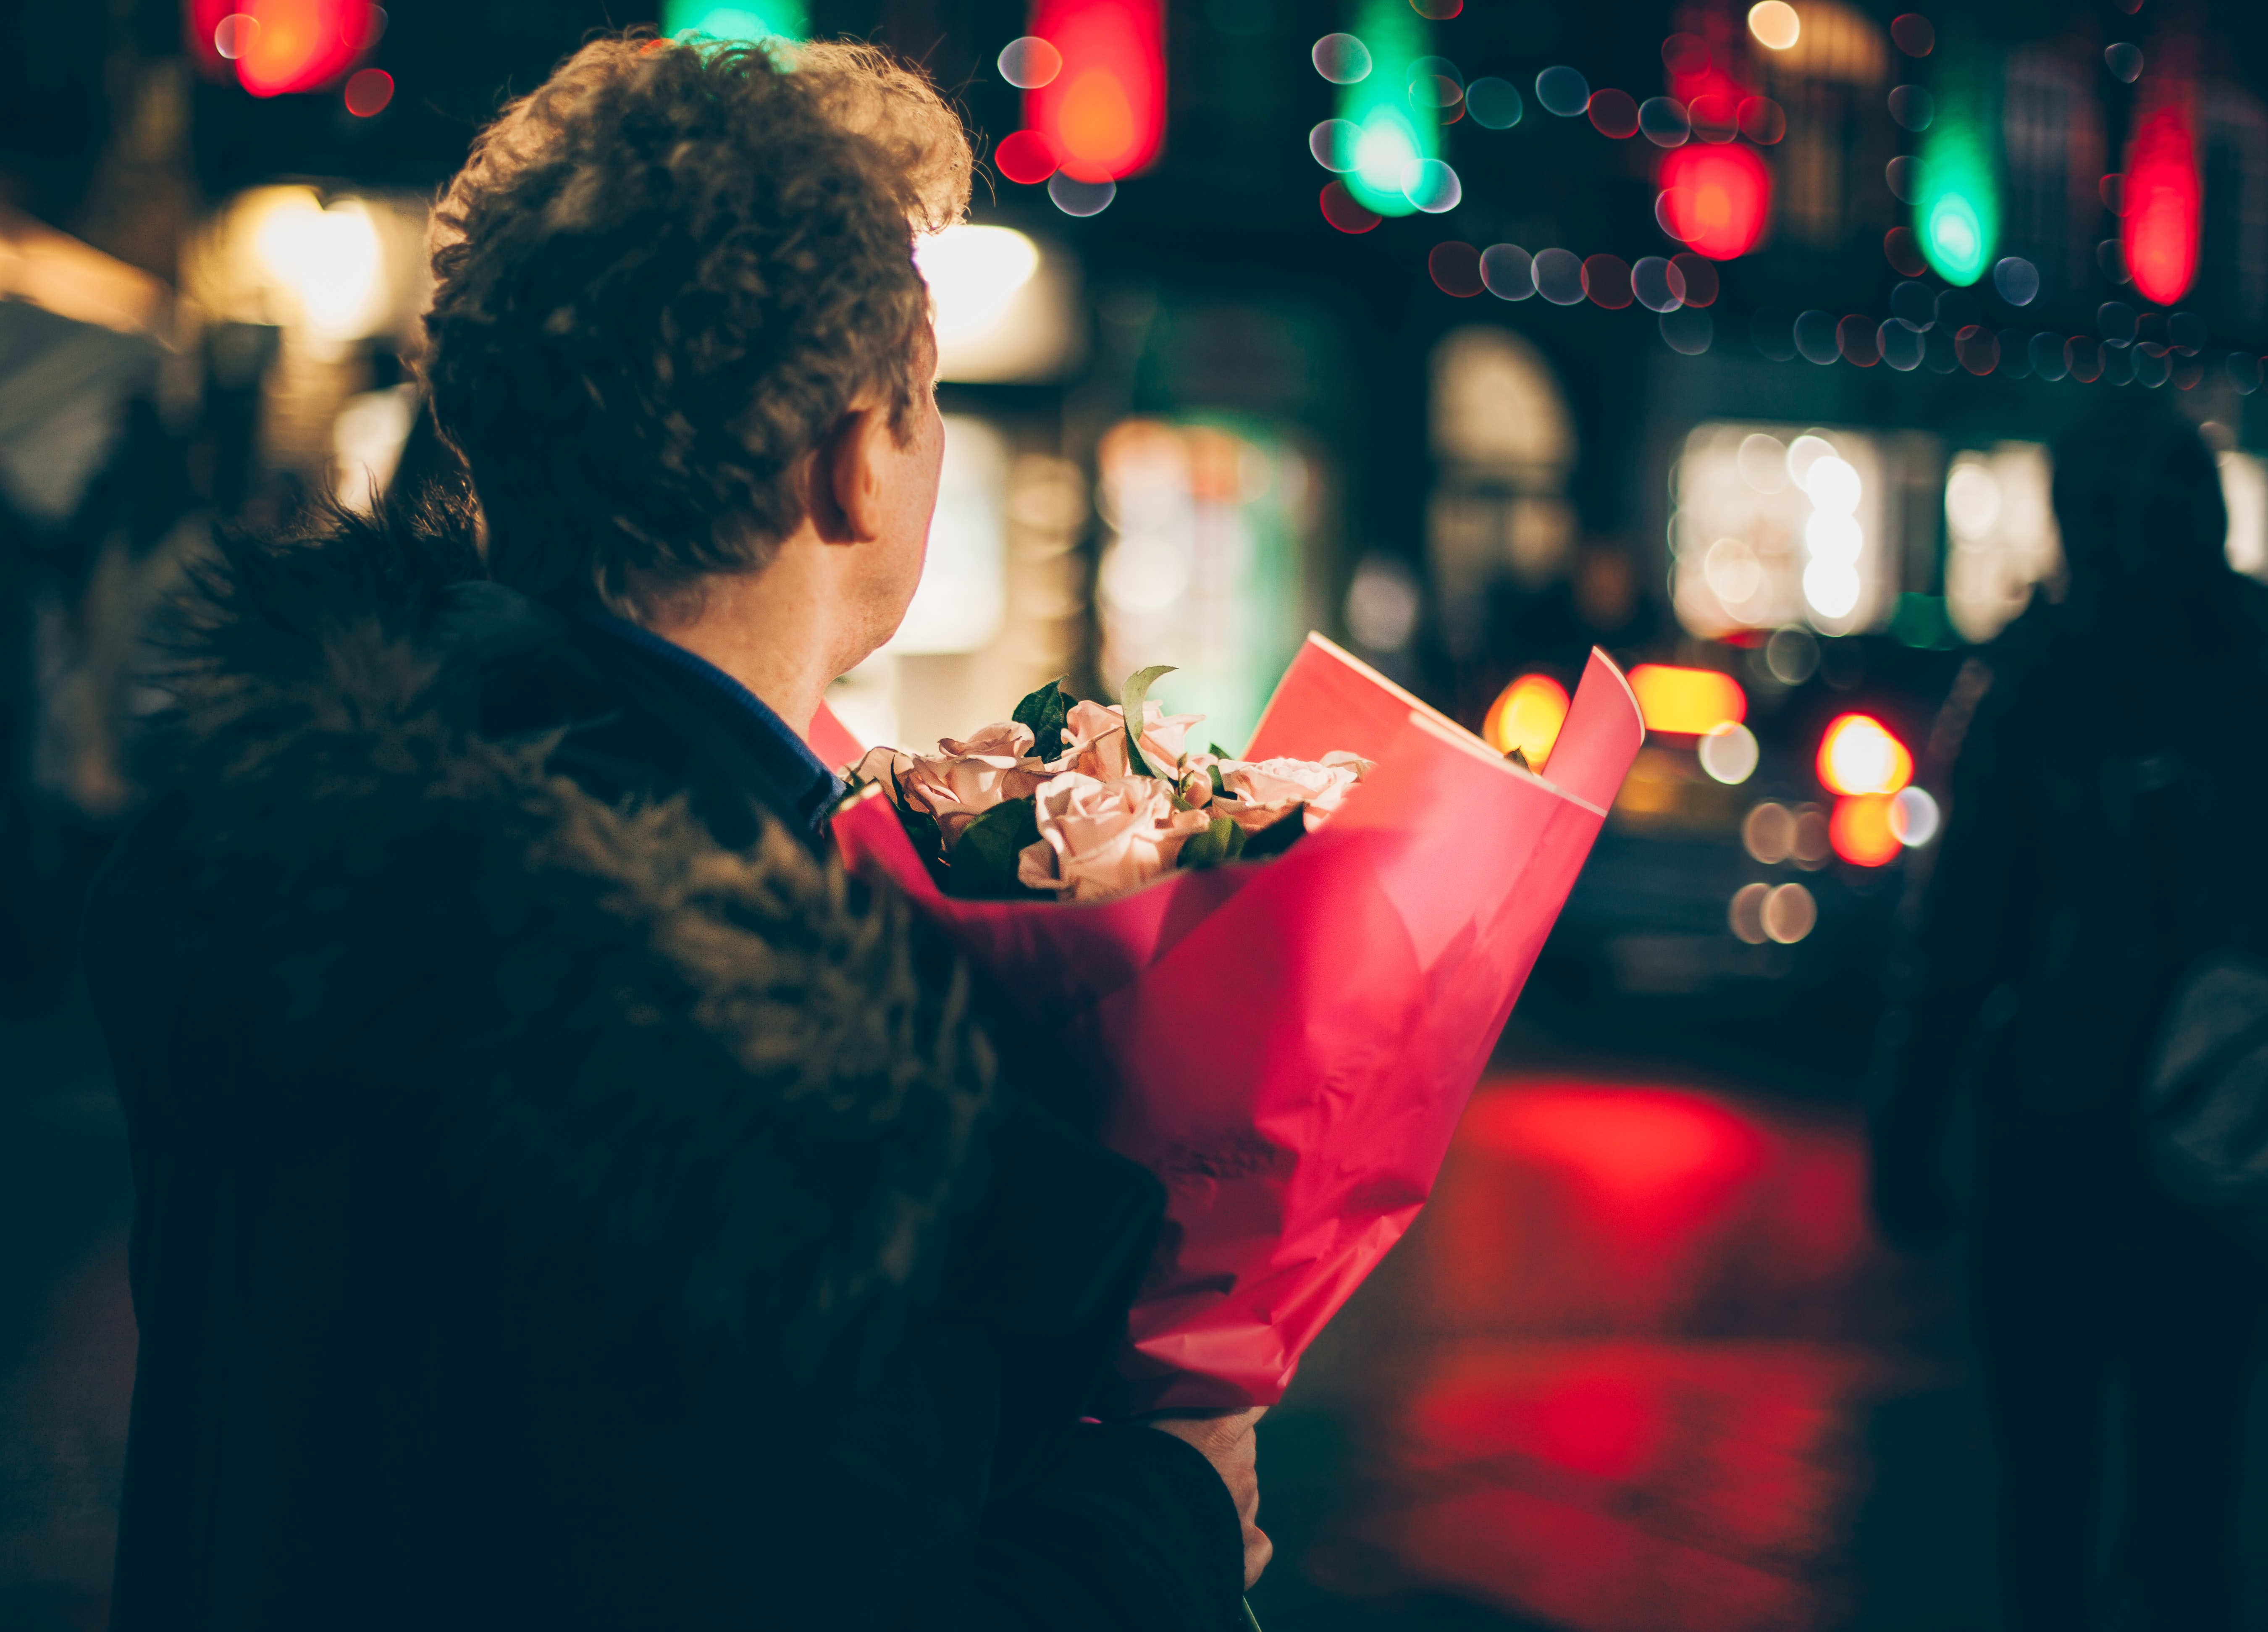 A man holding a bouquet of pink flowers awaits his date in Camden Town at night